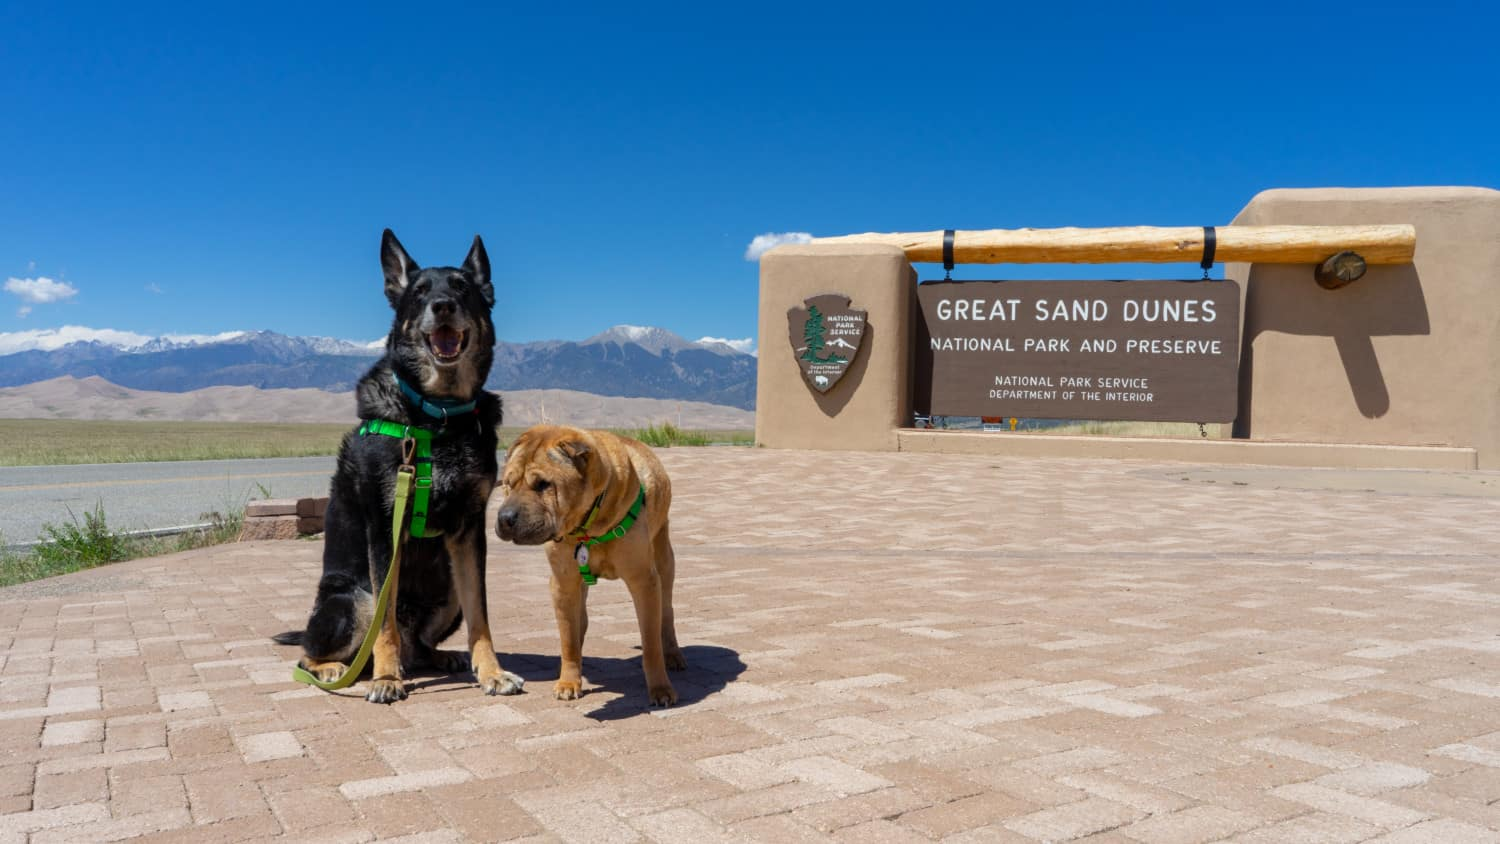 Buster and Ty, the GoPetFriendly.com dogs, at pet friendly Great Sand Dunes National Park